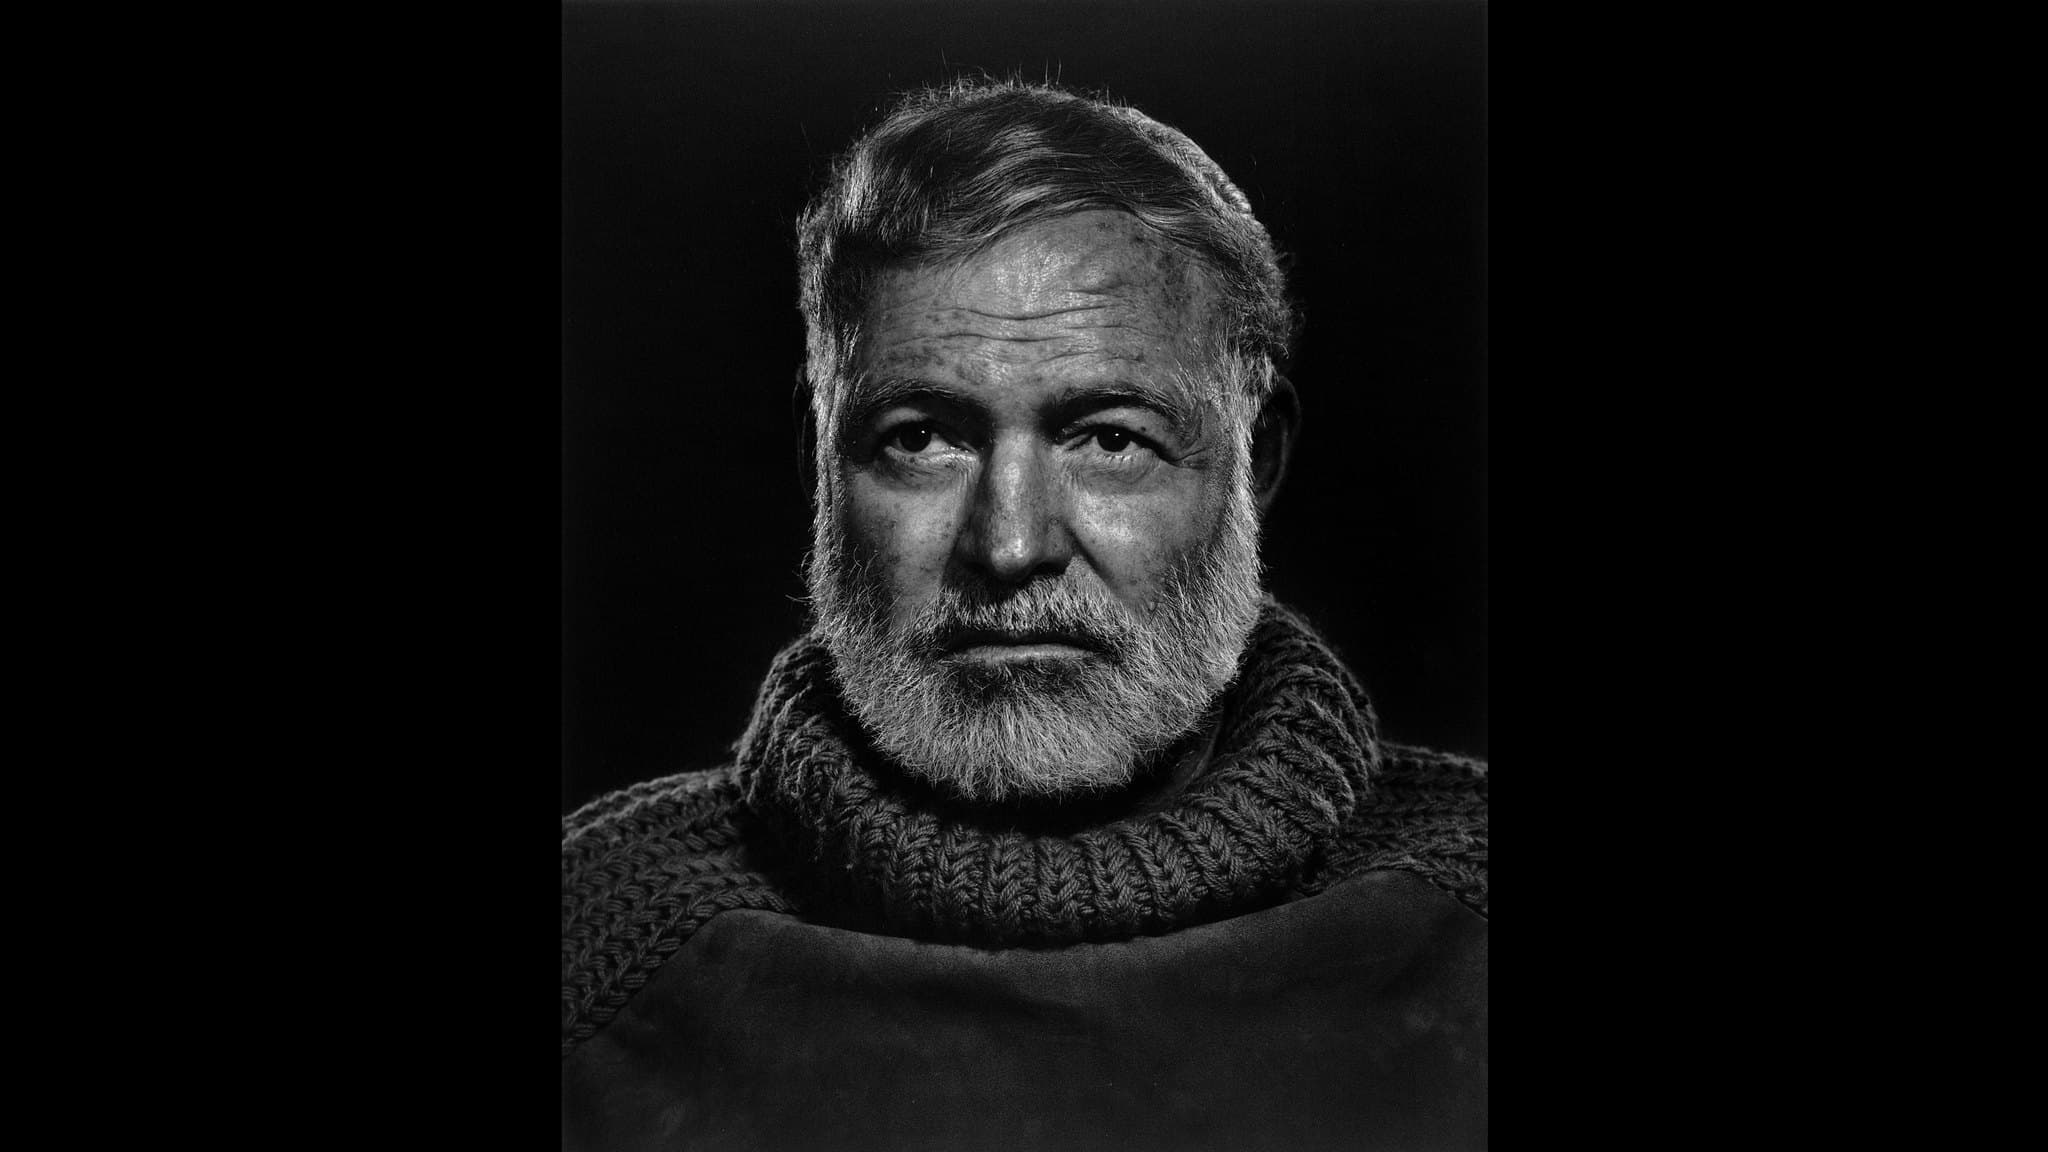 ernest hemingway beard photo - 1